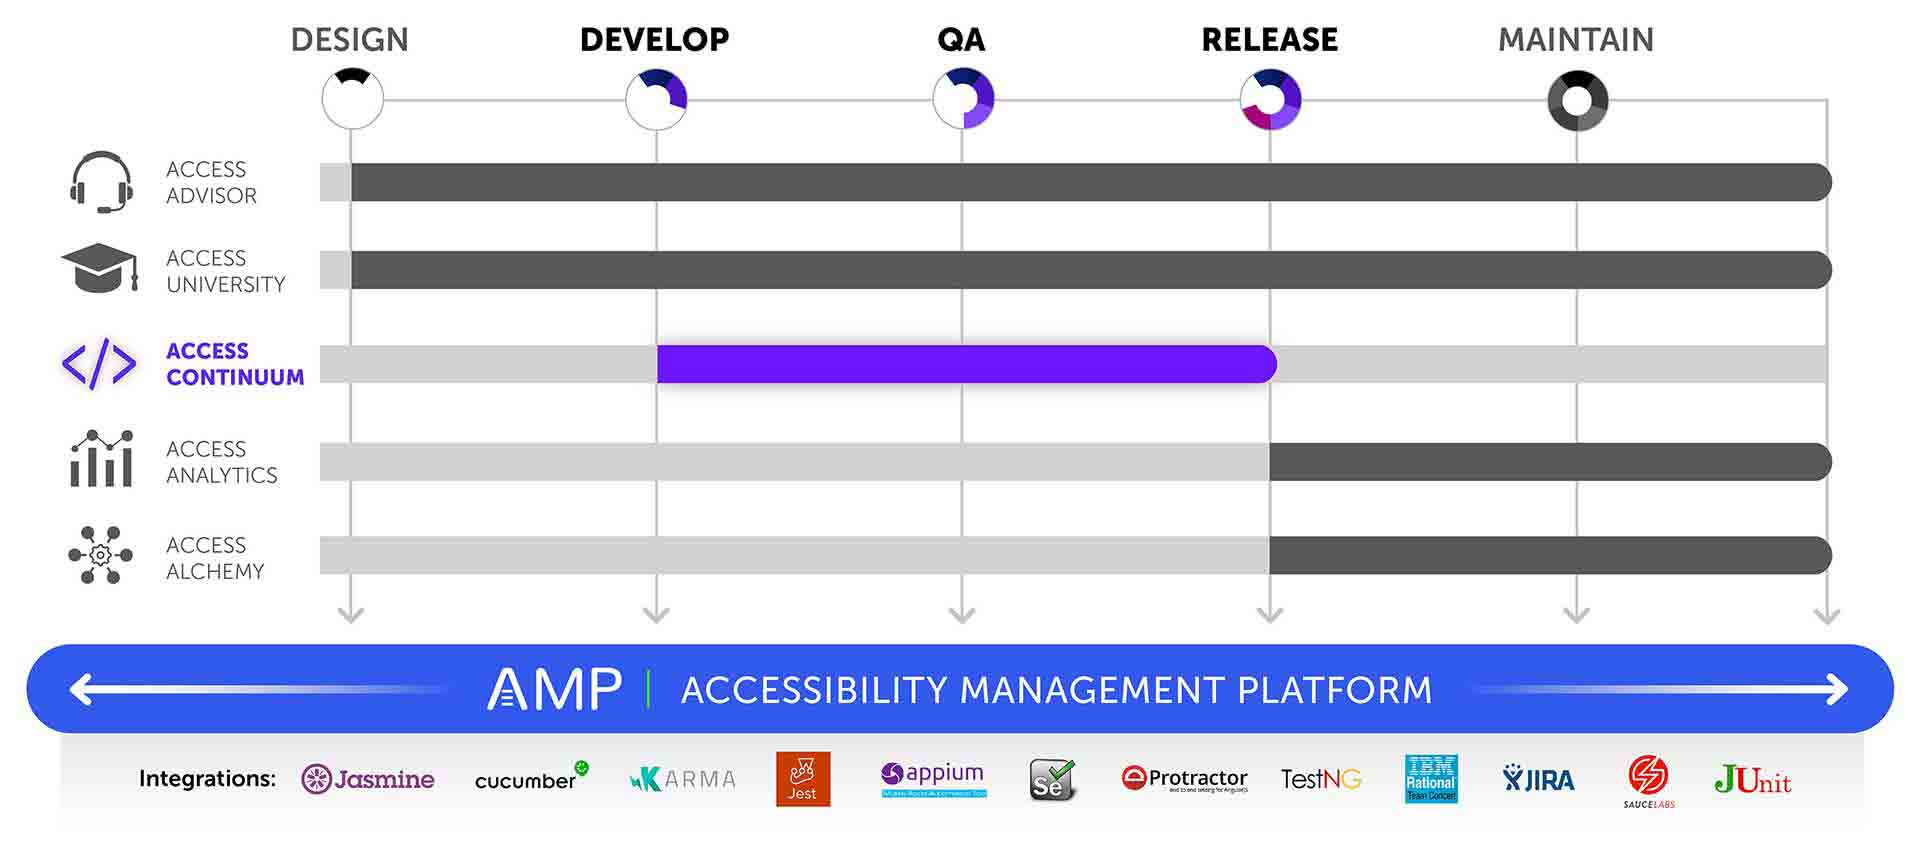 Graphic showing that AMP is the platform for all products and covers all phases of the software development lifecycle with integrations for Jasmine, Cucumber, Karma, Jest, Appium, Selenium, Protactor, TestNG, IBM Rational Team Concert, JIRA, JUnit, and Sauce Labs. Access Continuum is shown highlighted and covers Develop, QA, and Release stages as well.